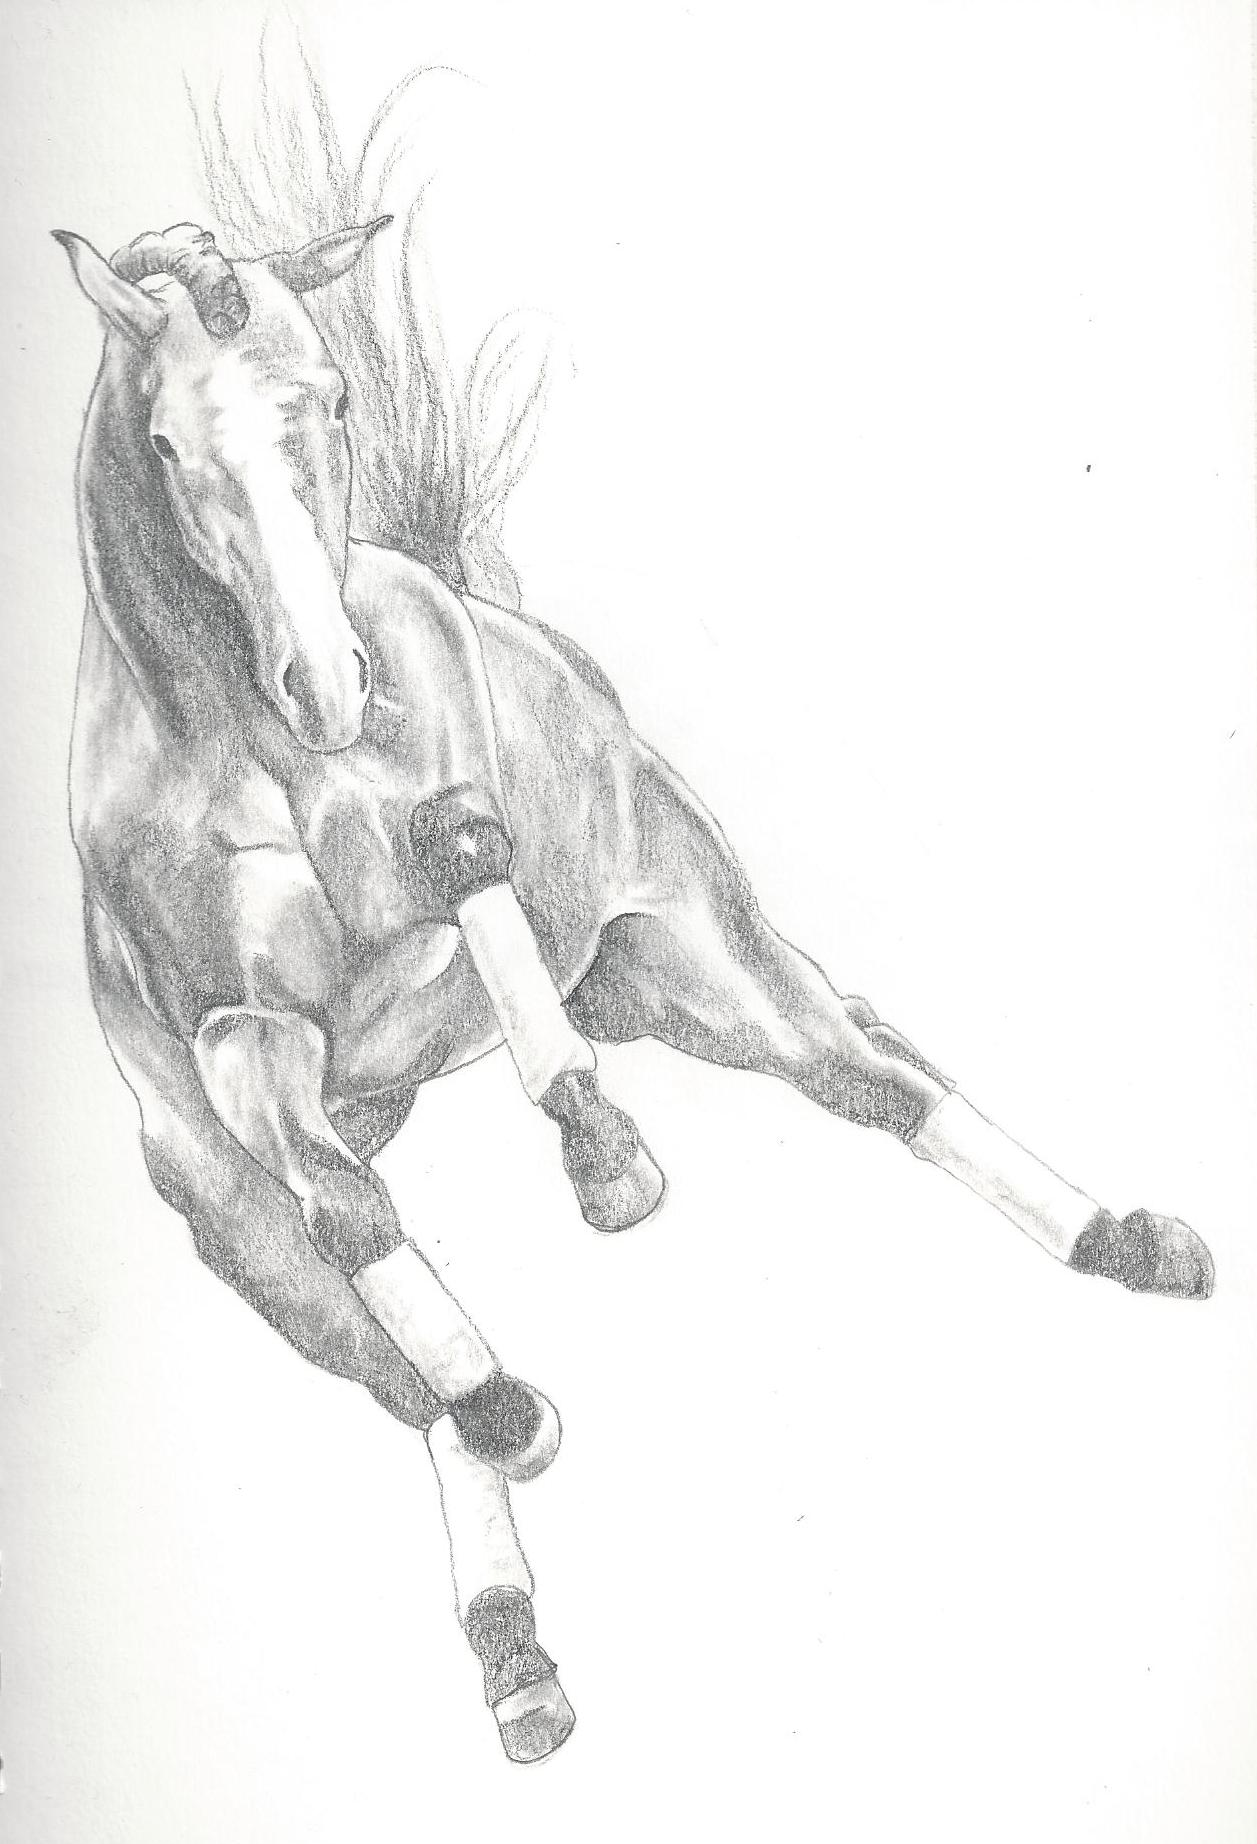 Jumping horse sketch